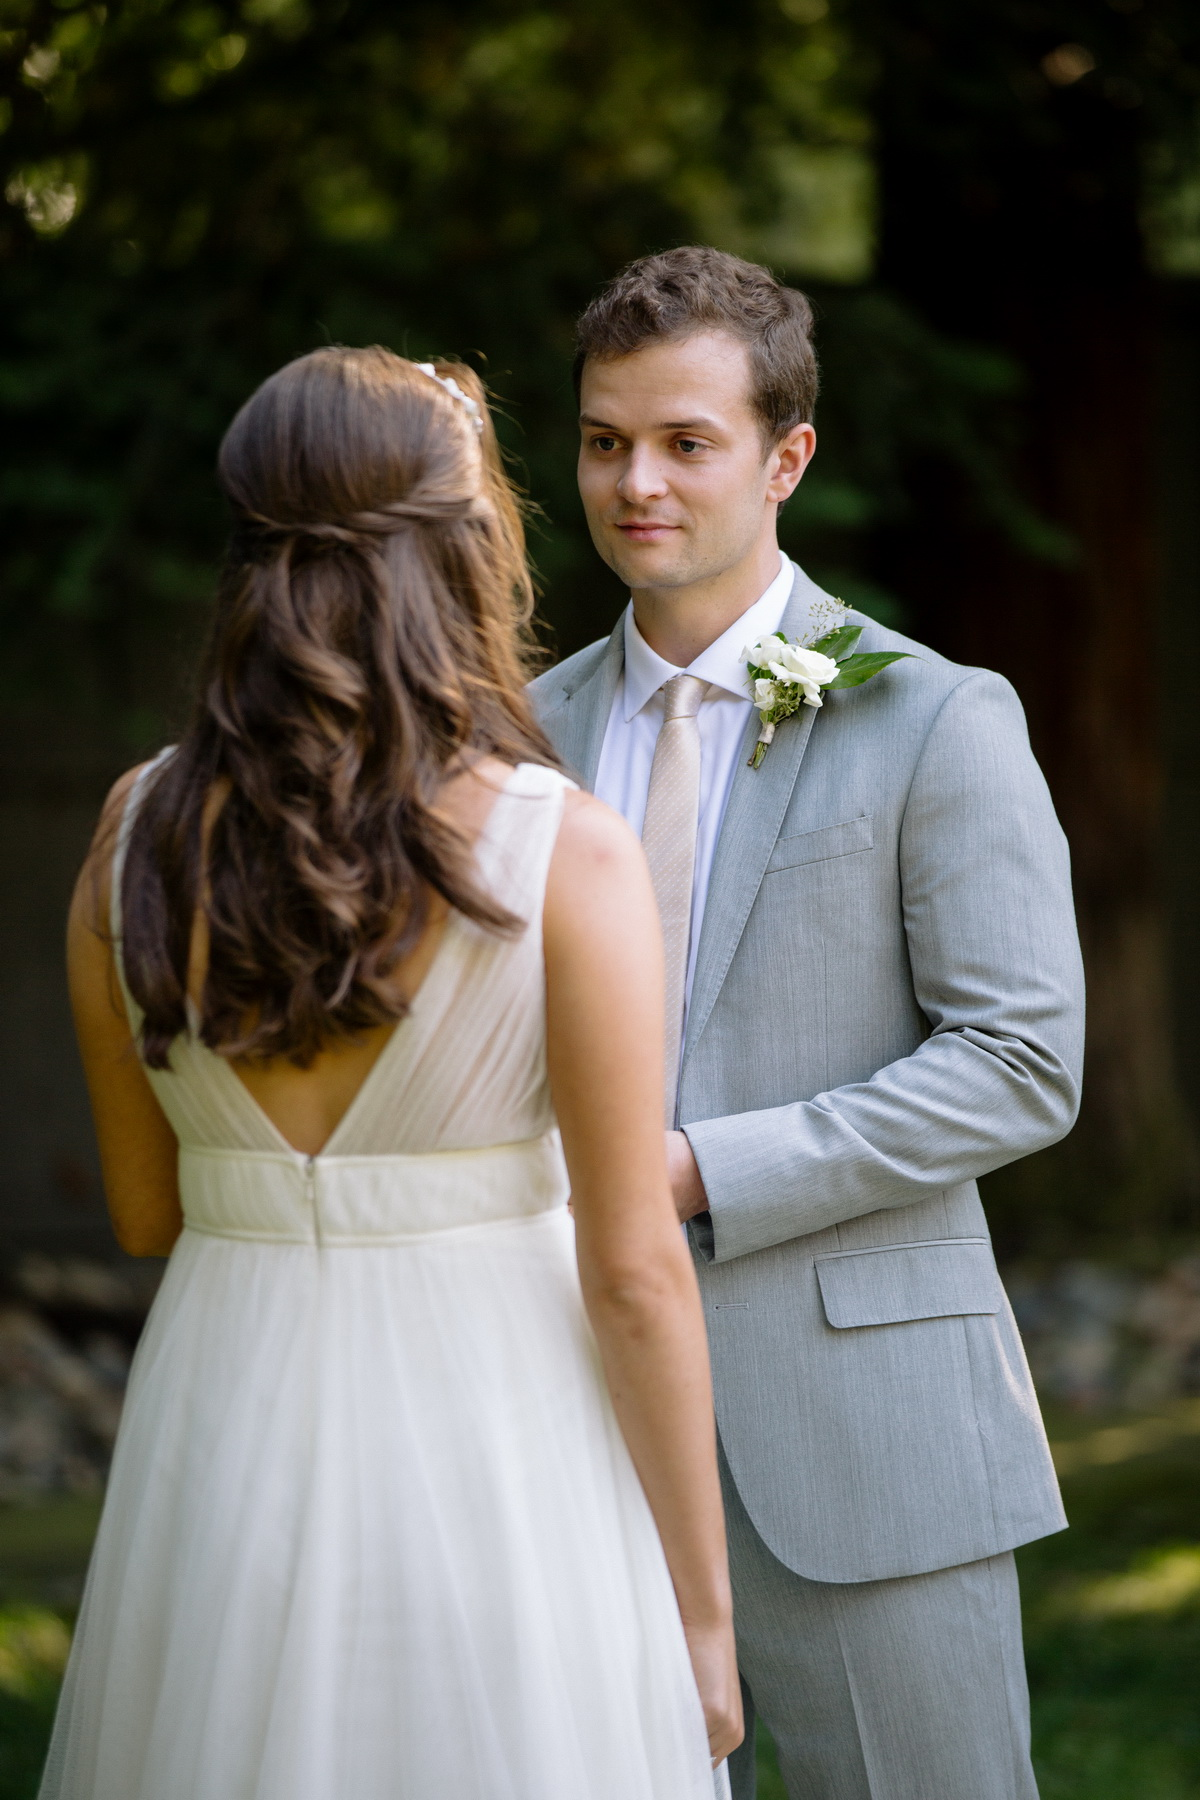 grooms face as he recites his vows